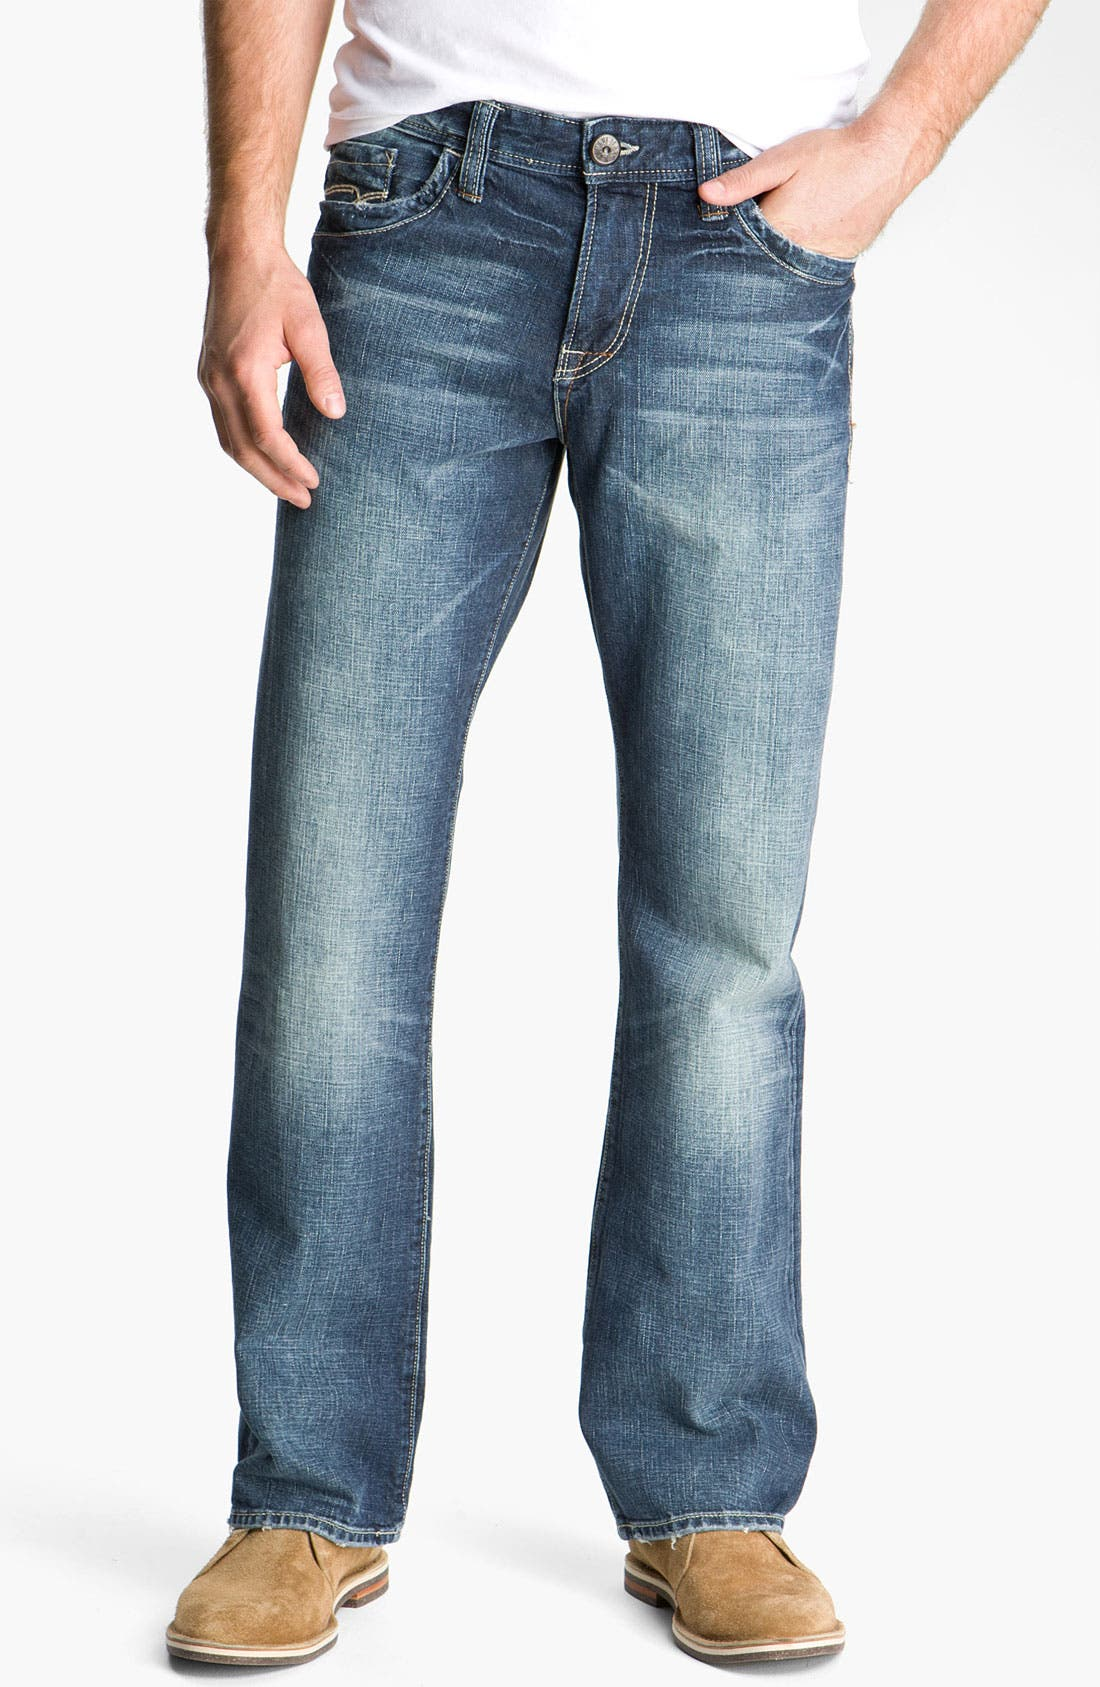 Alternate Image 1 Selected - Mavi Jeans 'Matt' Relaxed Fit Jeans (New York Cashmere)